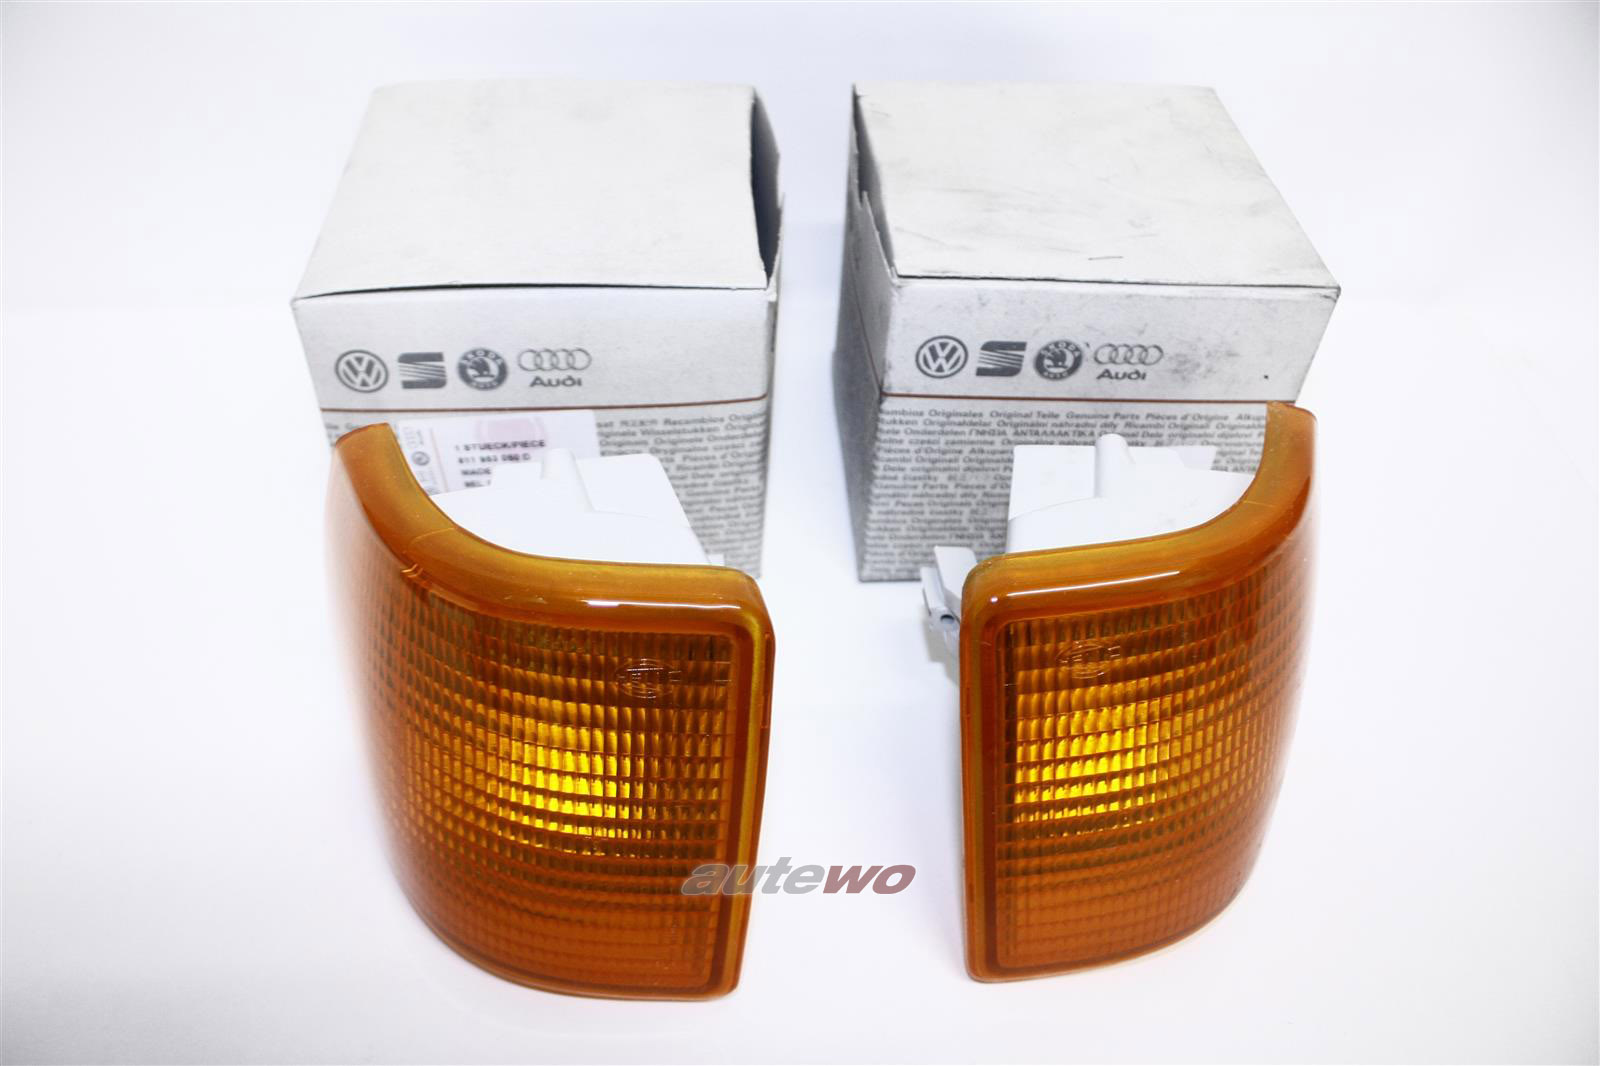 NEU! Audi 80 Typ 81 Orig. Blinker Paar Hella Li. & Re. orange 811953049D & 811953050D